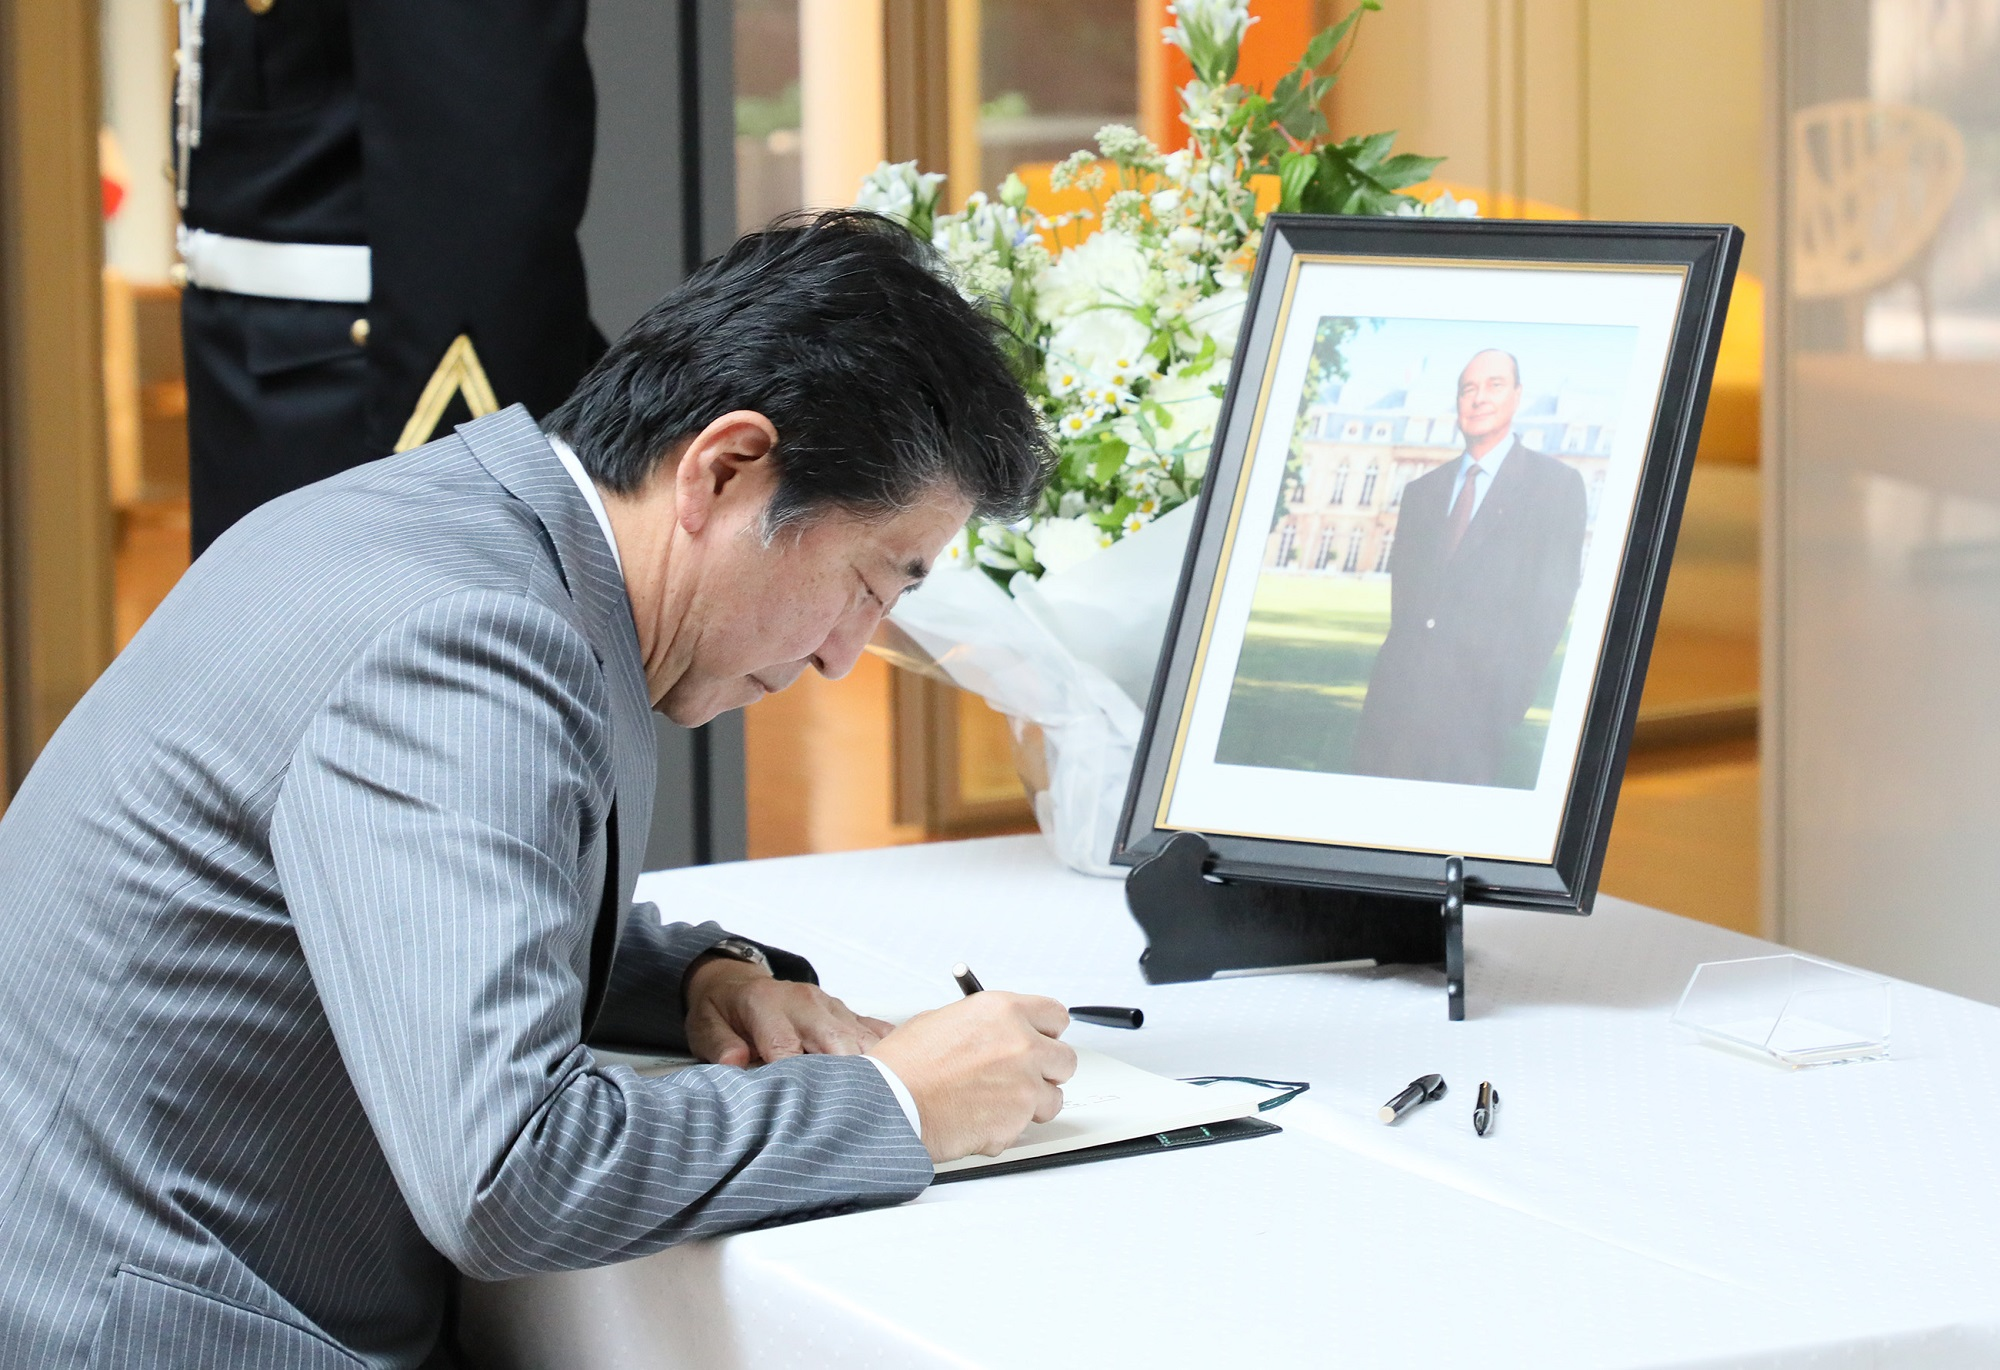 Photograph of the Prime Minister paying his condolences (3)